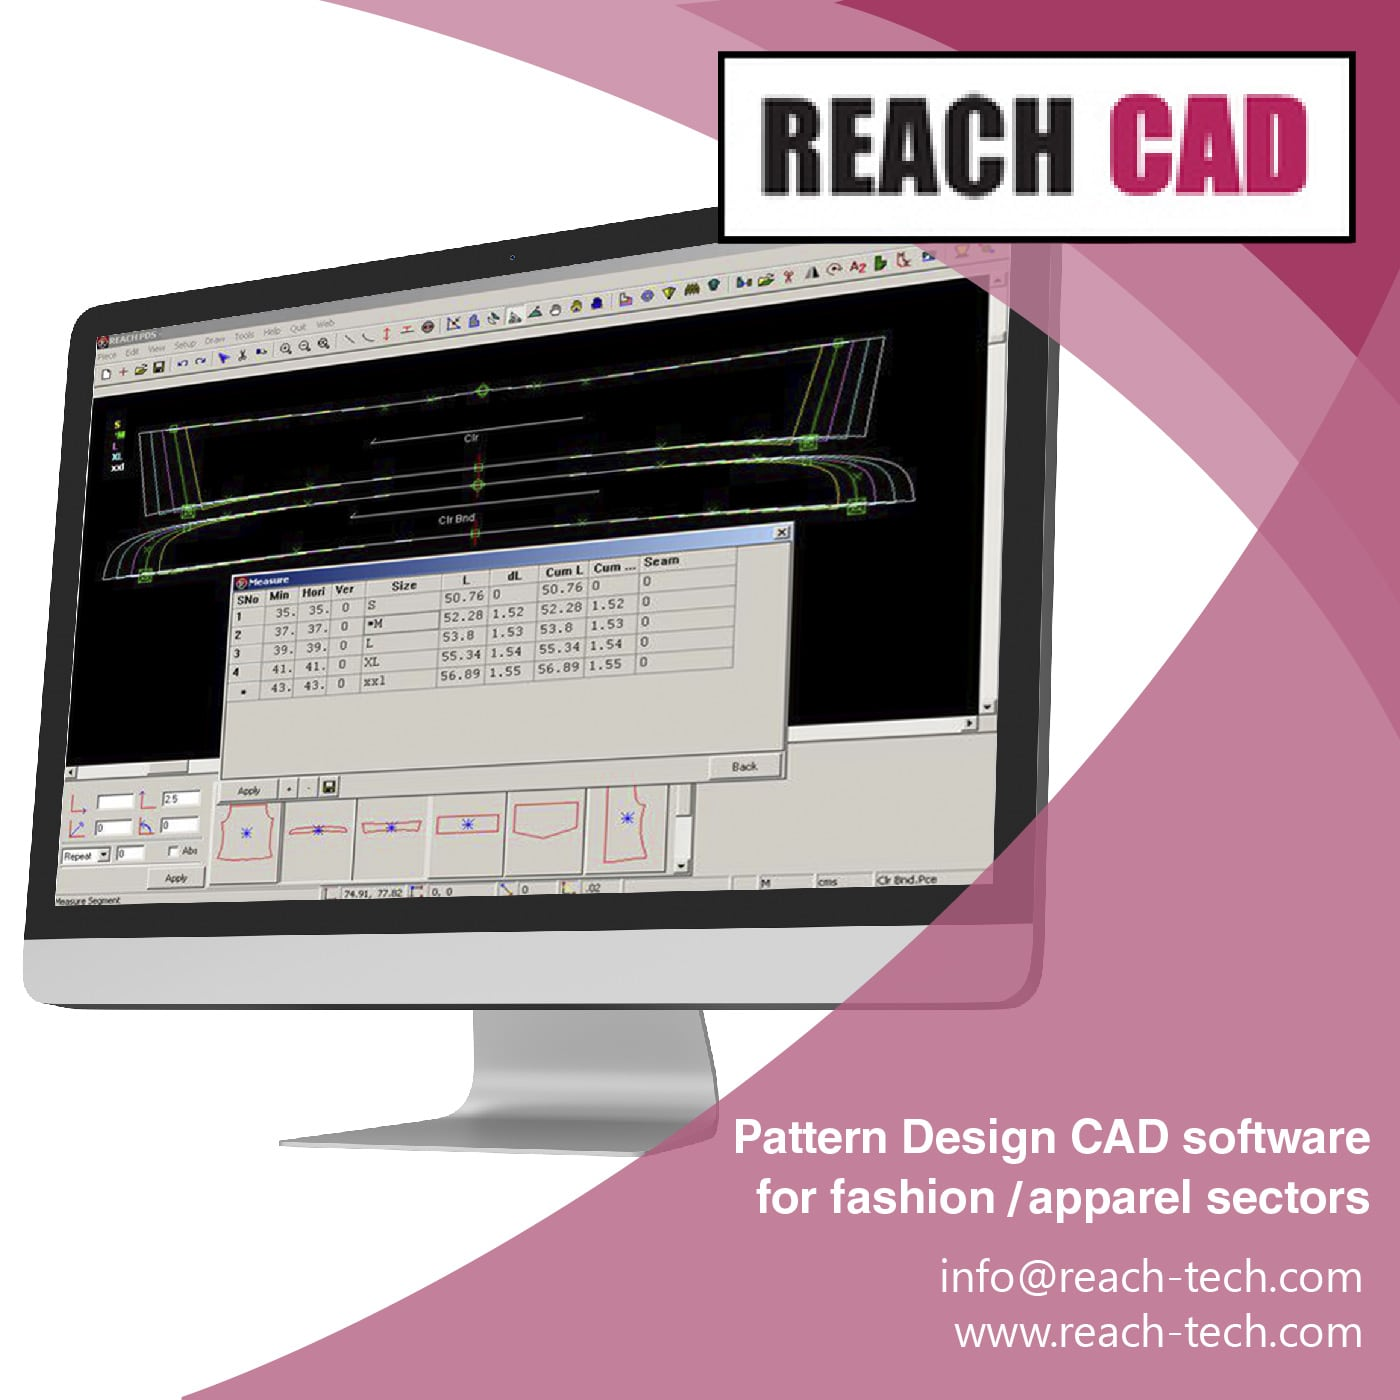 pattern-cad-software-reach-cad-1